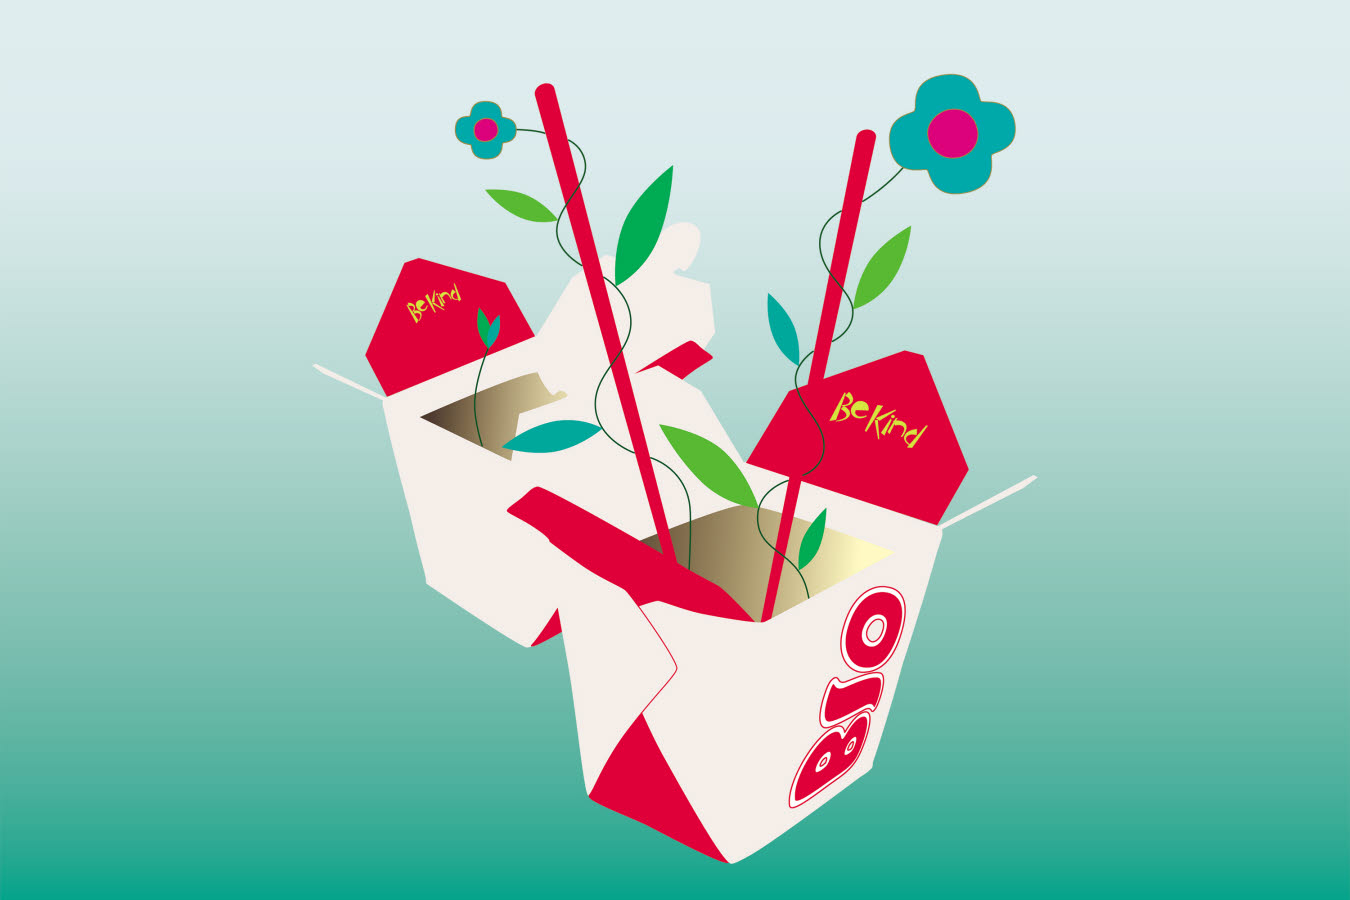 Illustrated Chinese takeout delivery boxes